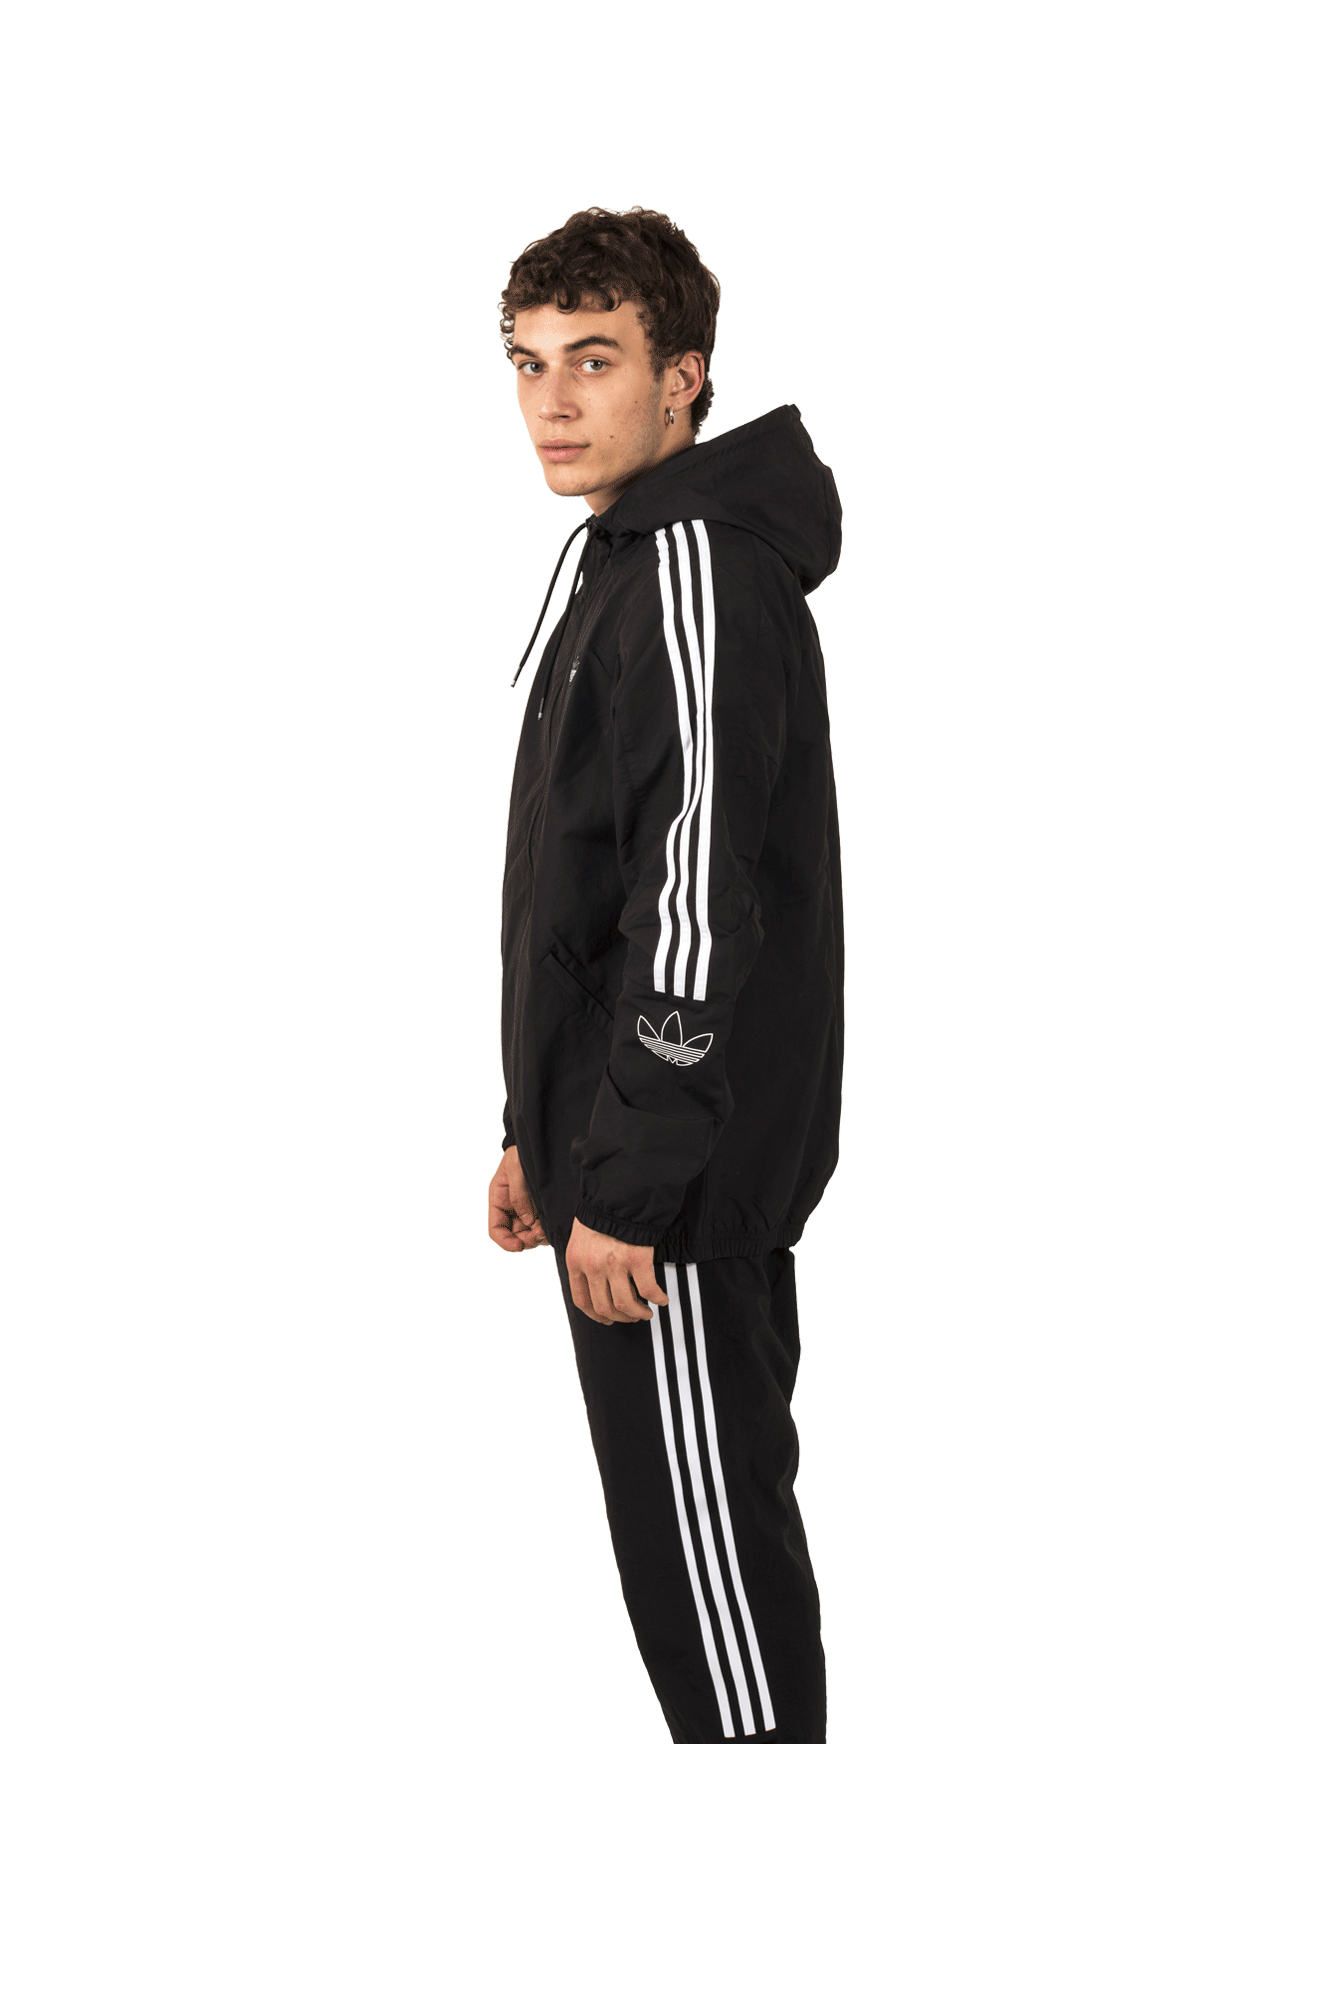 Adidas Originals Sweaters Outline TRF WB Jacket Black ED4688#000#Black#S - One Block Down